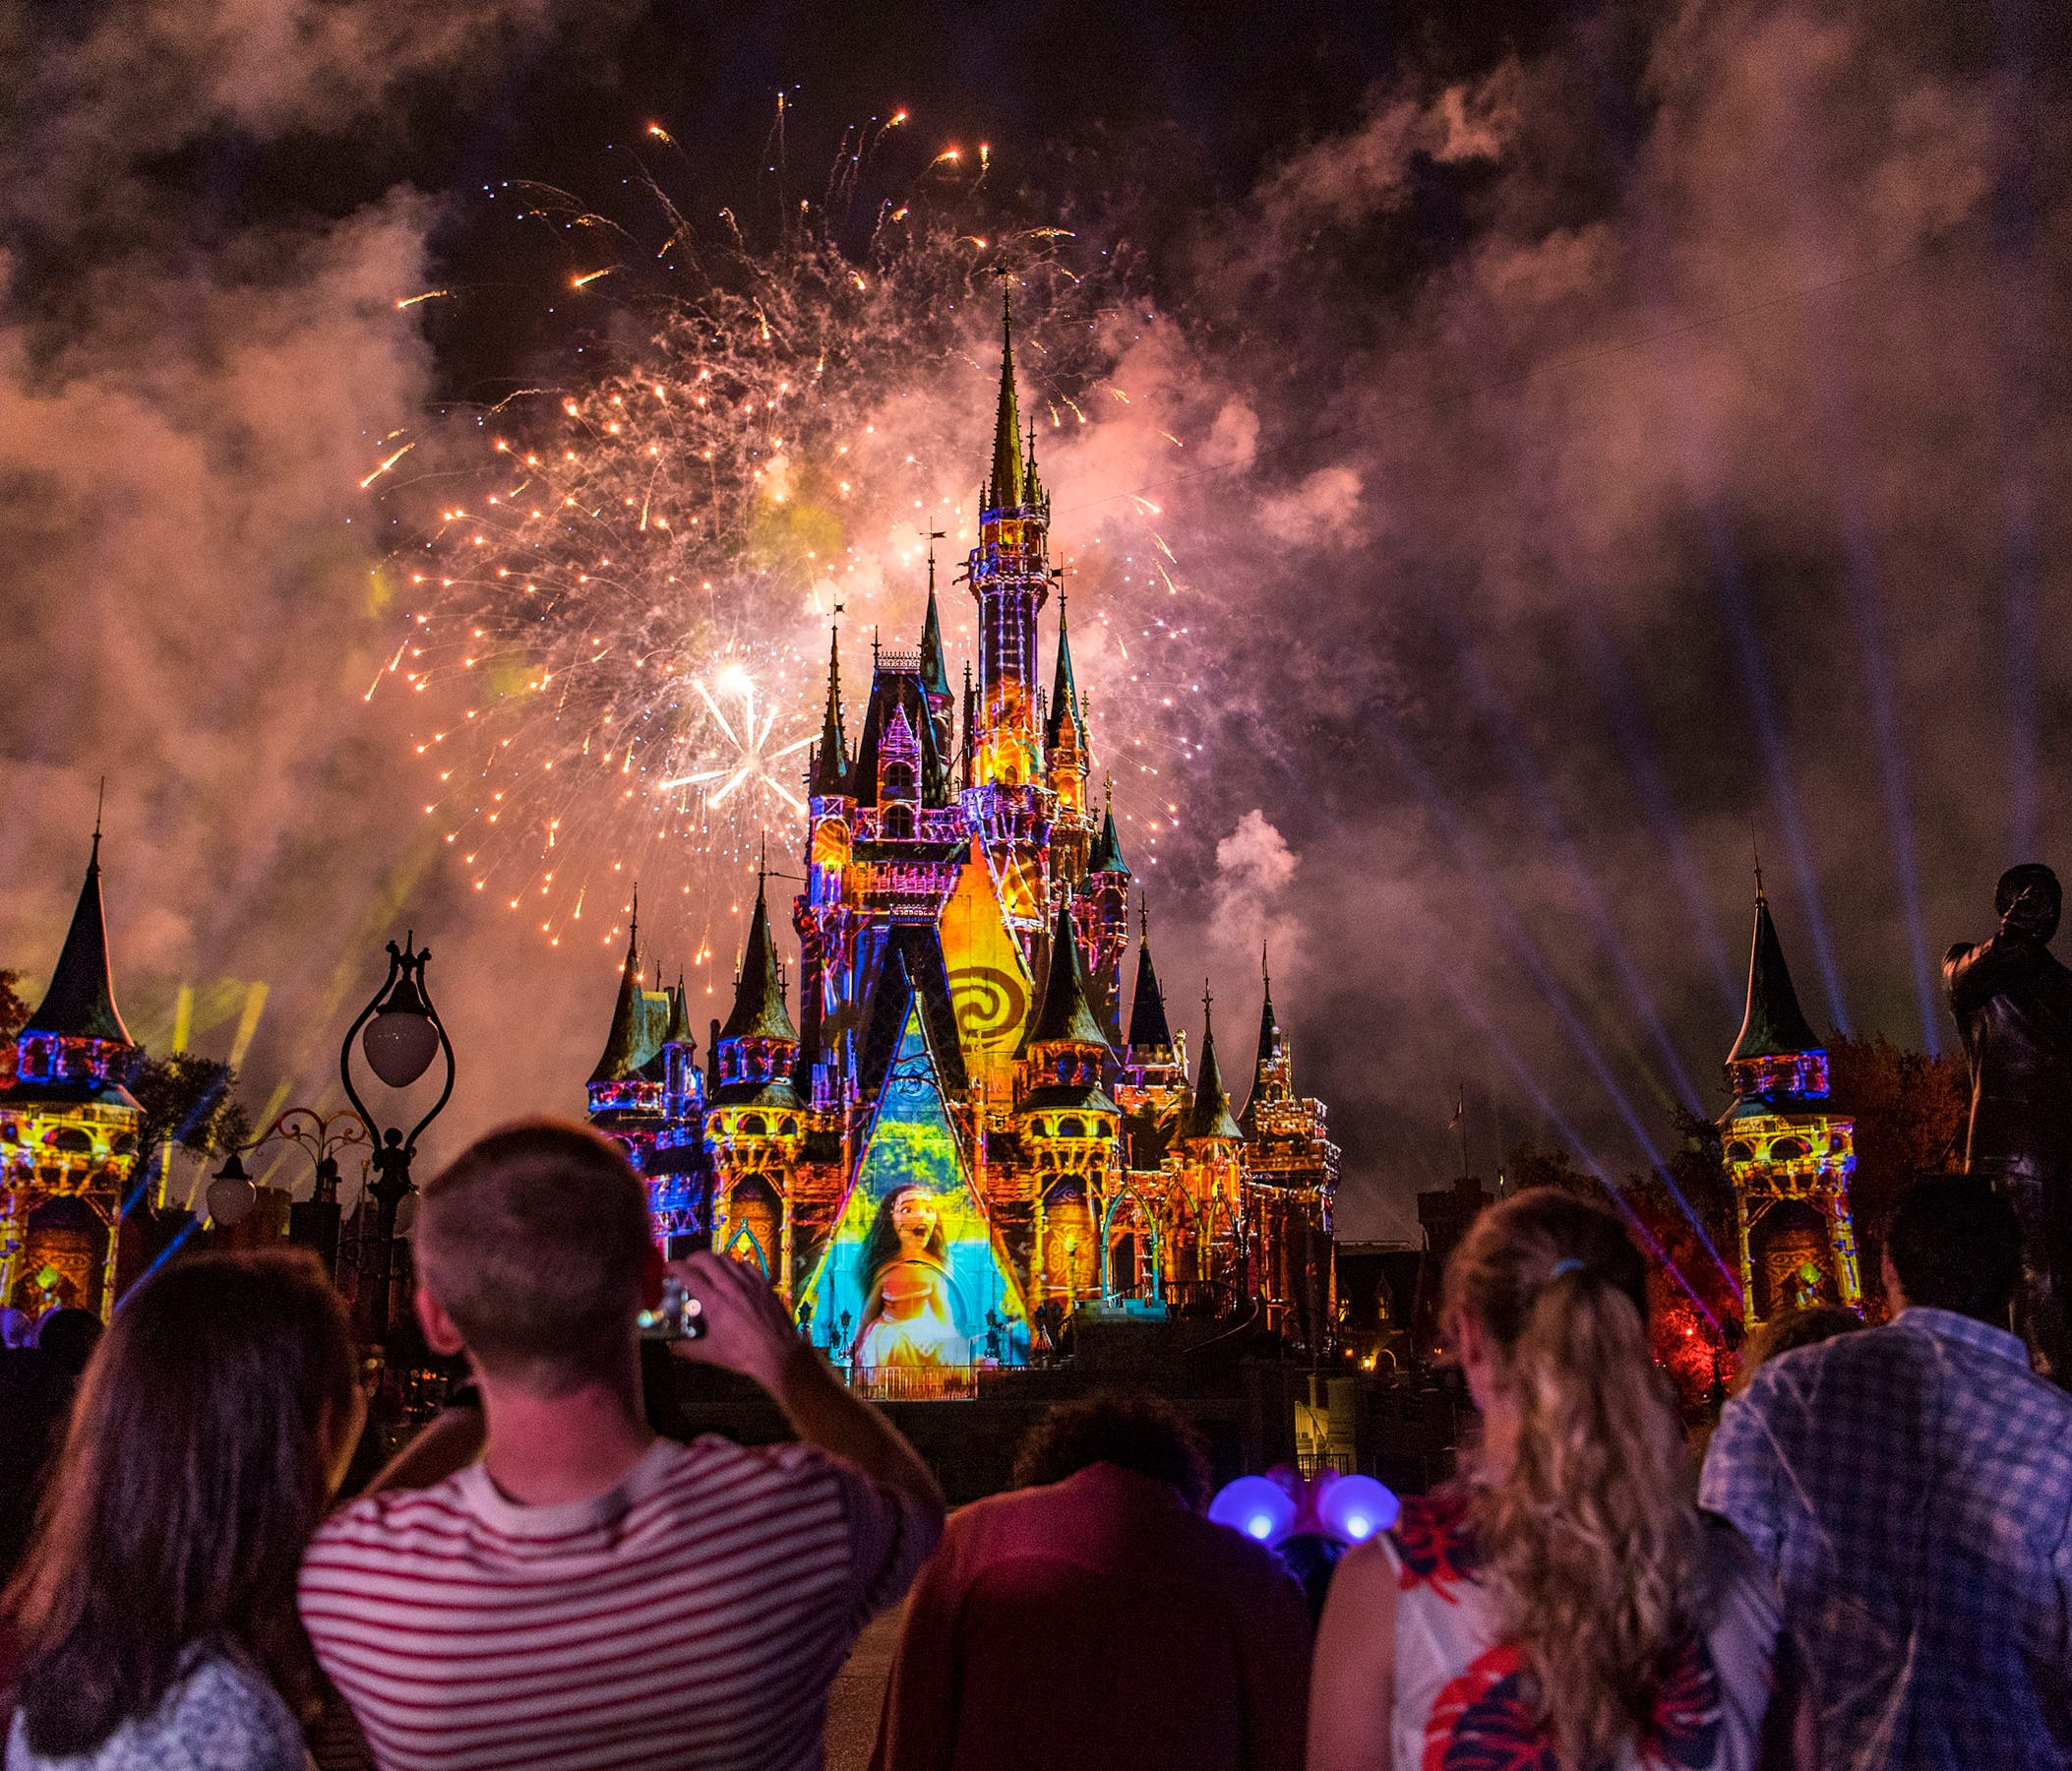 Walt Disney World Resort guests can discover the newest, most spectacular fireworks show in the history of Magic Kingdom Park with